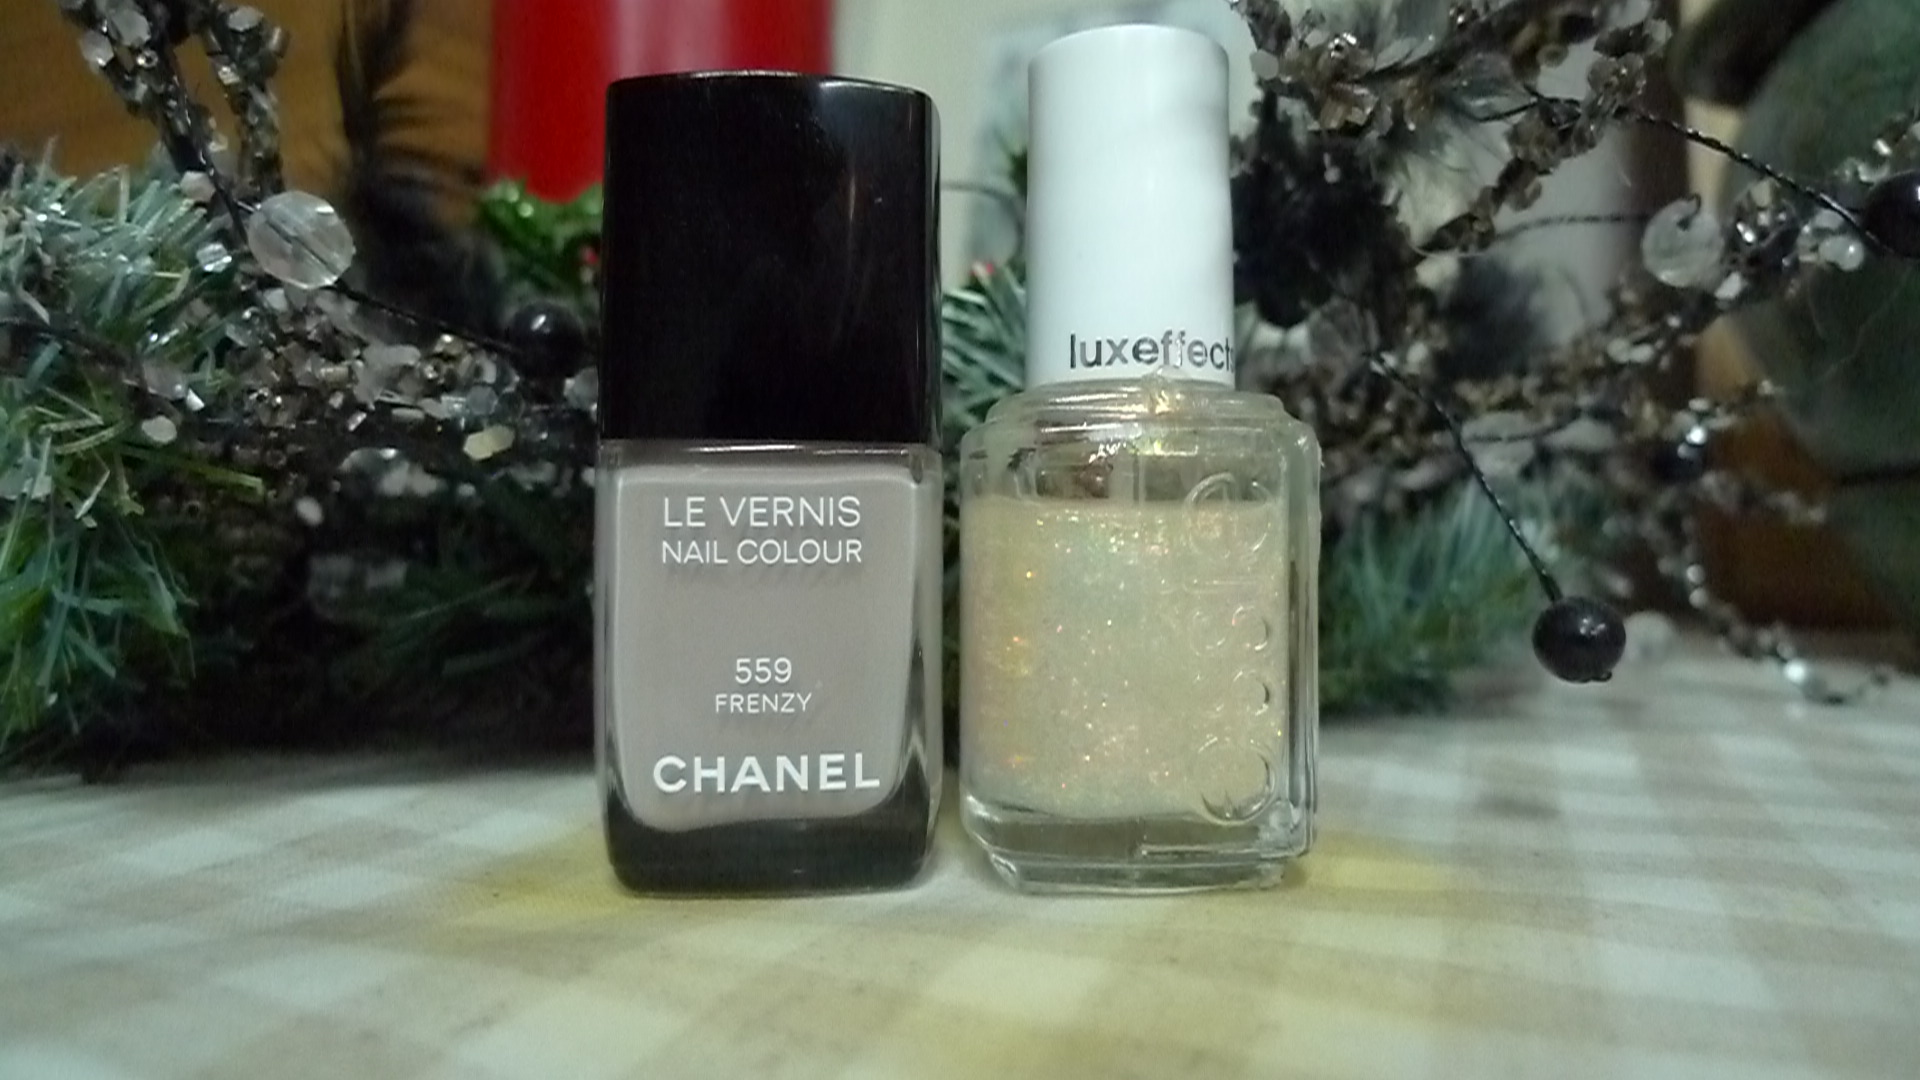 CHANEL 559 frenzy, ESSIE shine of the times